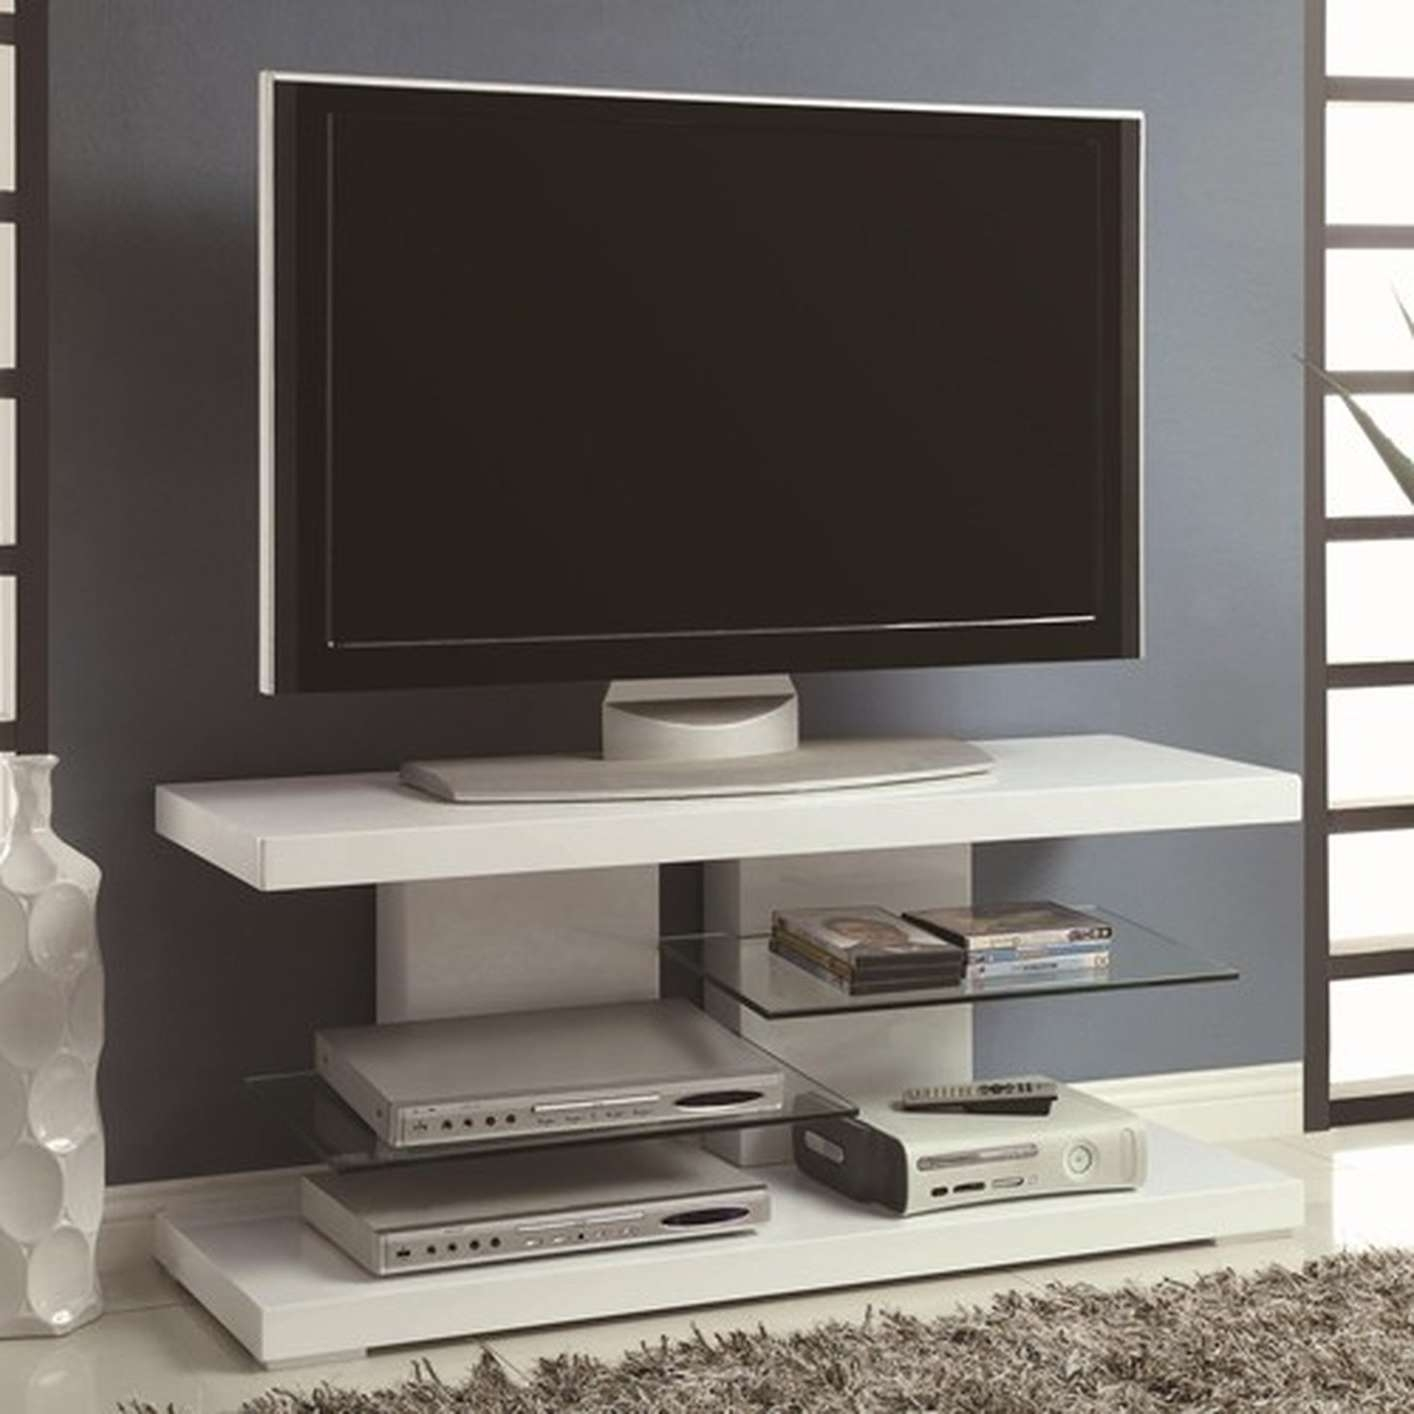 White Glass Tv Stand – Steal A Sofa Furniture Outlet Los Angeles Ca With White Tv Stands (View 13 of 15)